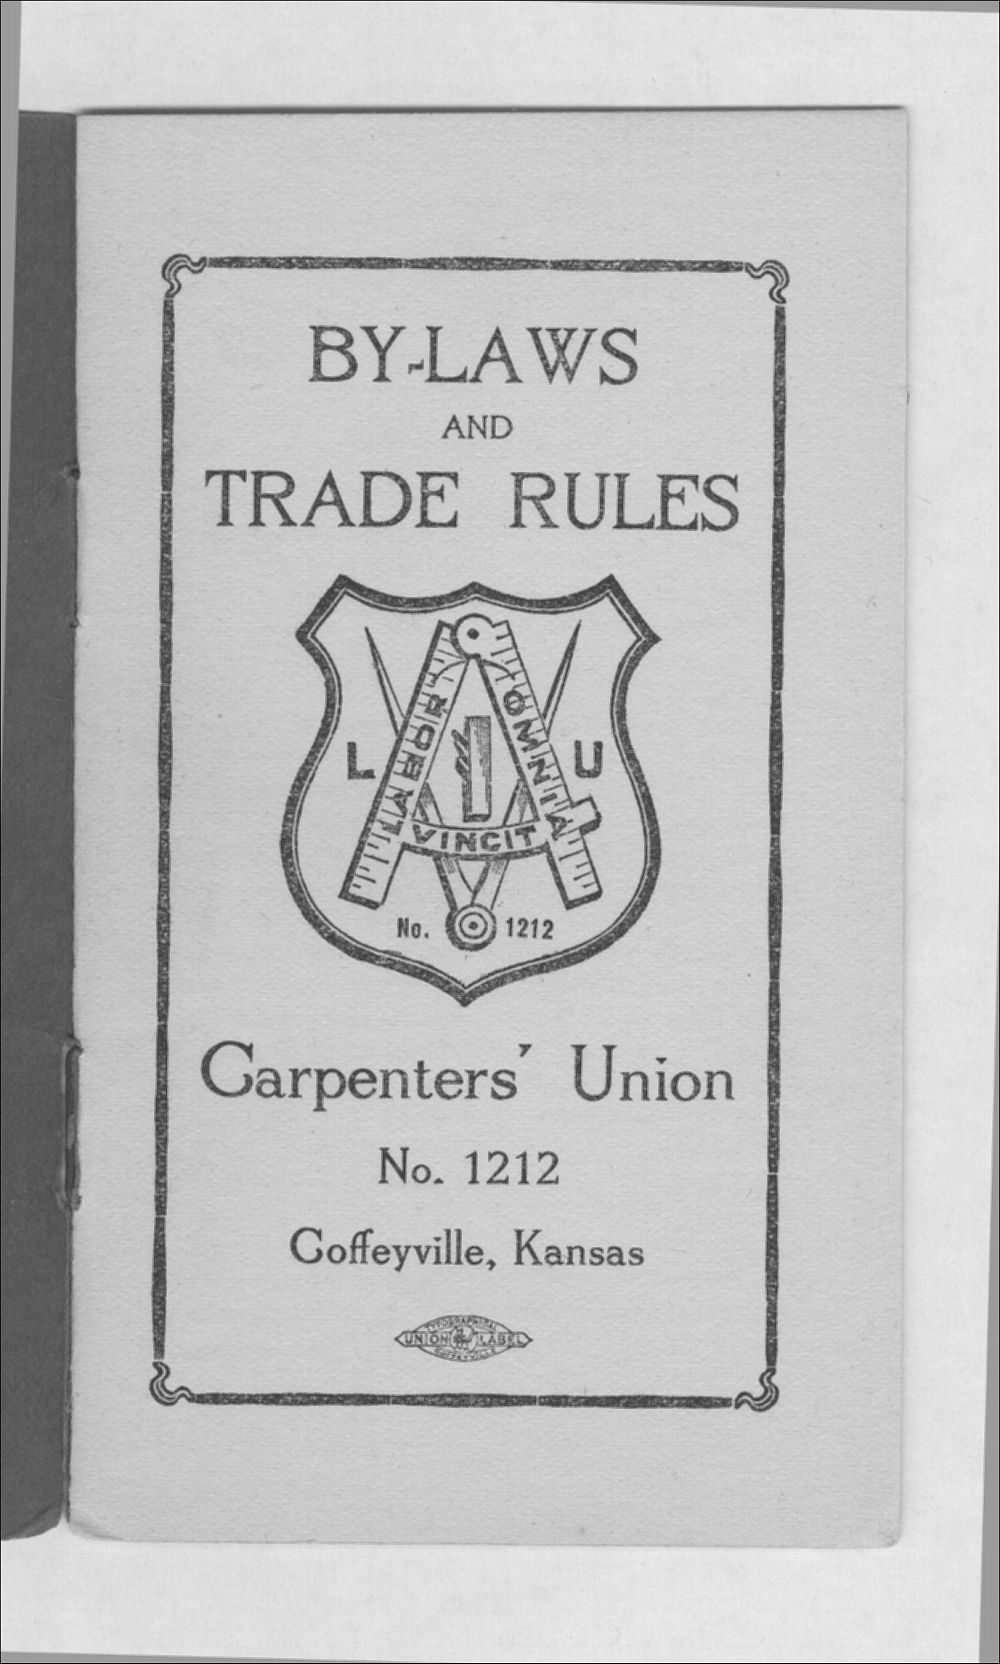 By-laws and trade rules of Carpenter's Union No. 1212 - 2